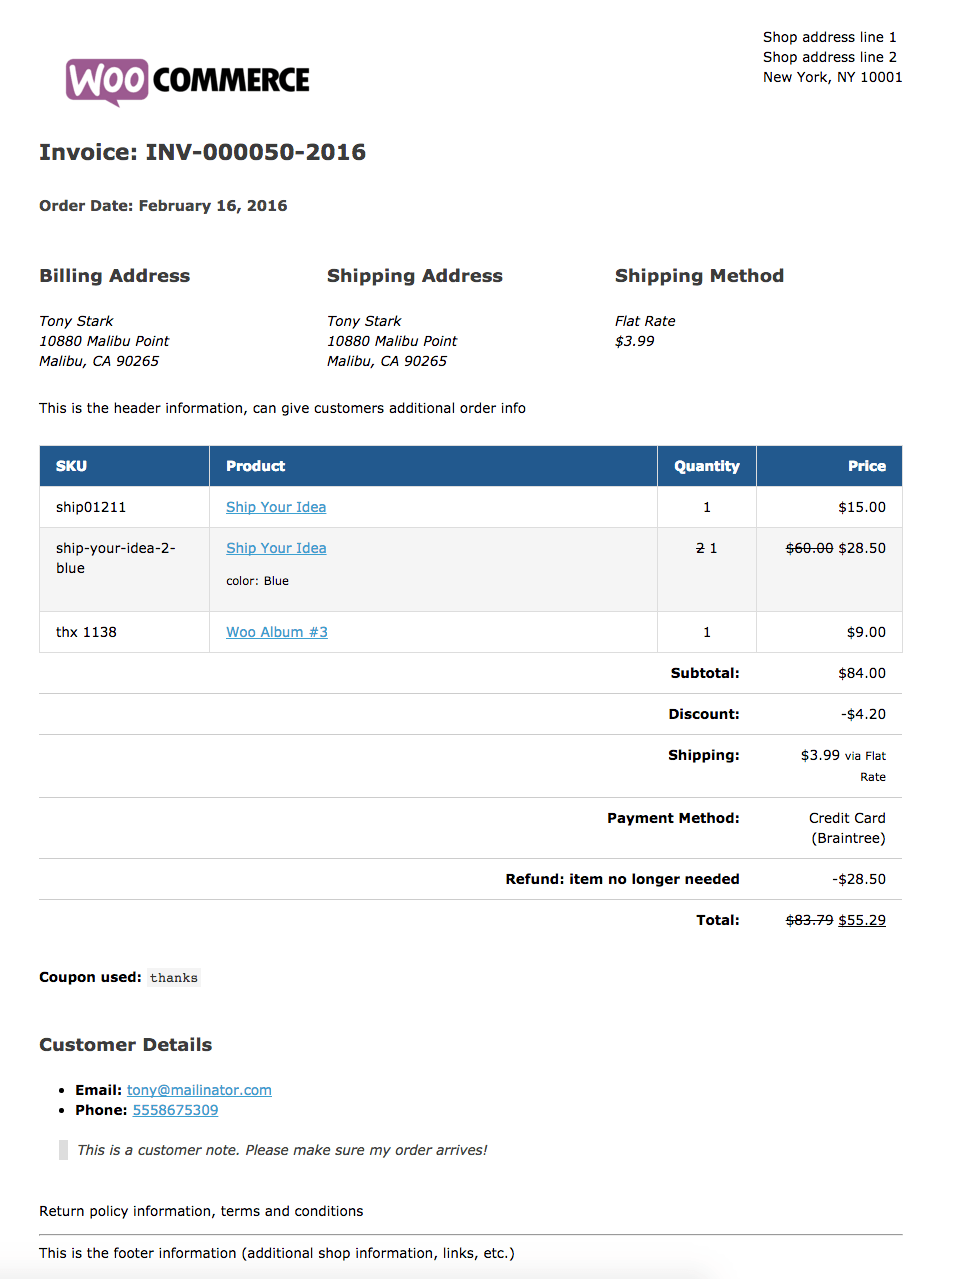 Coolmathgamesus  Pleasing Print Invoices Amp Packing Lists  Woocommerce With Fair View A Sample Invoice  With Agreeable Chilli Receipt Also Outlook  Read Receipt In Addition Money Gram Receipt And How Long Do You Keep Receipts As Well As Usps Return Receipt Requested Additionally Read Receipts In Outlook From Woocommercecom With Coolmathgamesus  Fair Print Invoices Amp Packing Lists  Woocommerce With Agreeable View A Sample Invoice  And Pleasing Chilli Receipt Also Outlook  Read Receipt In Addition Money Gram Receipt From Woocommercecom